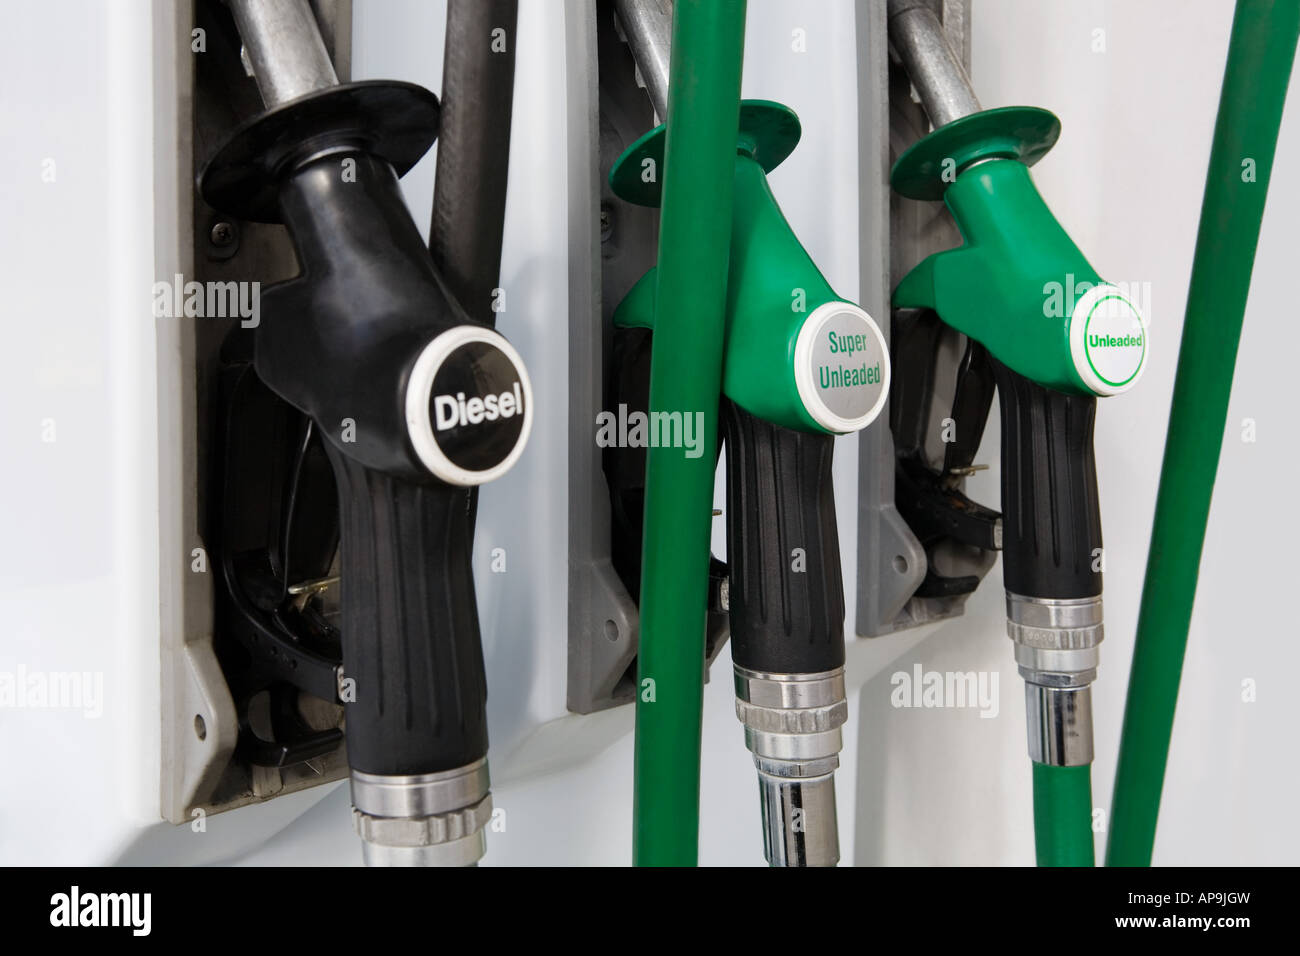 Fuel pump - Stock Image